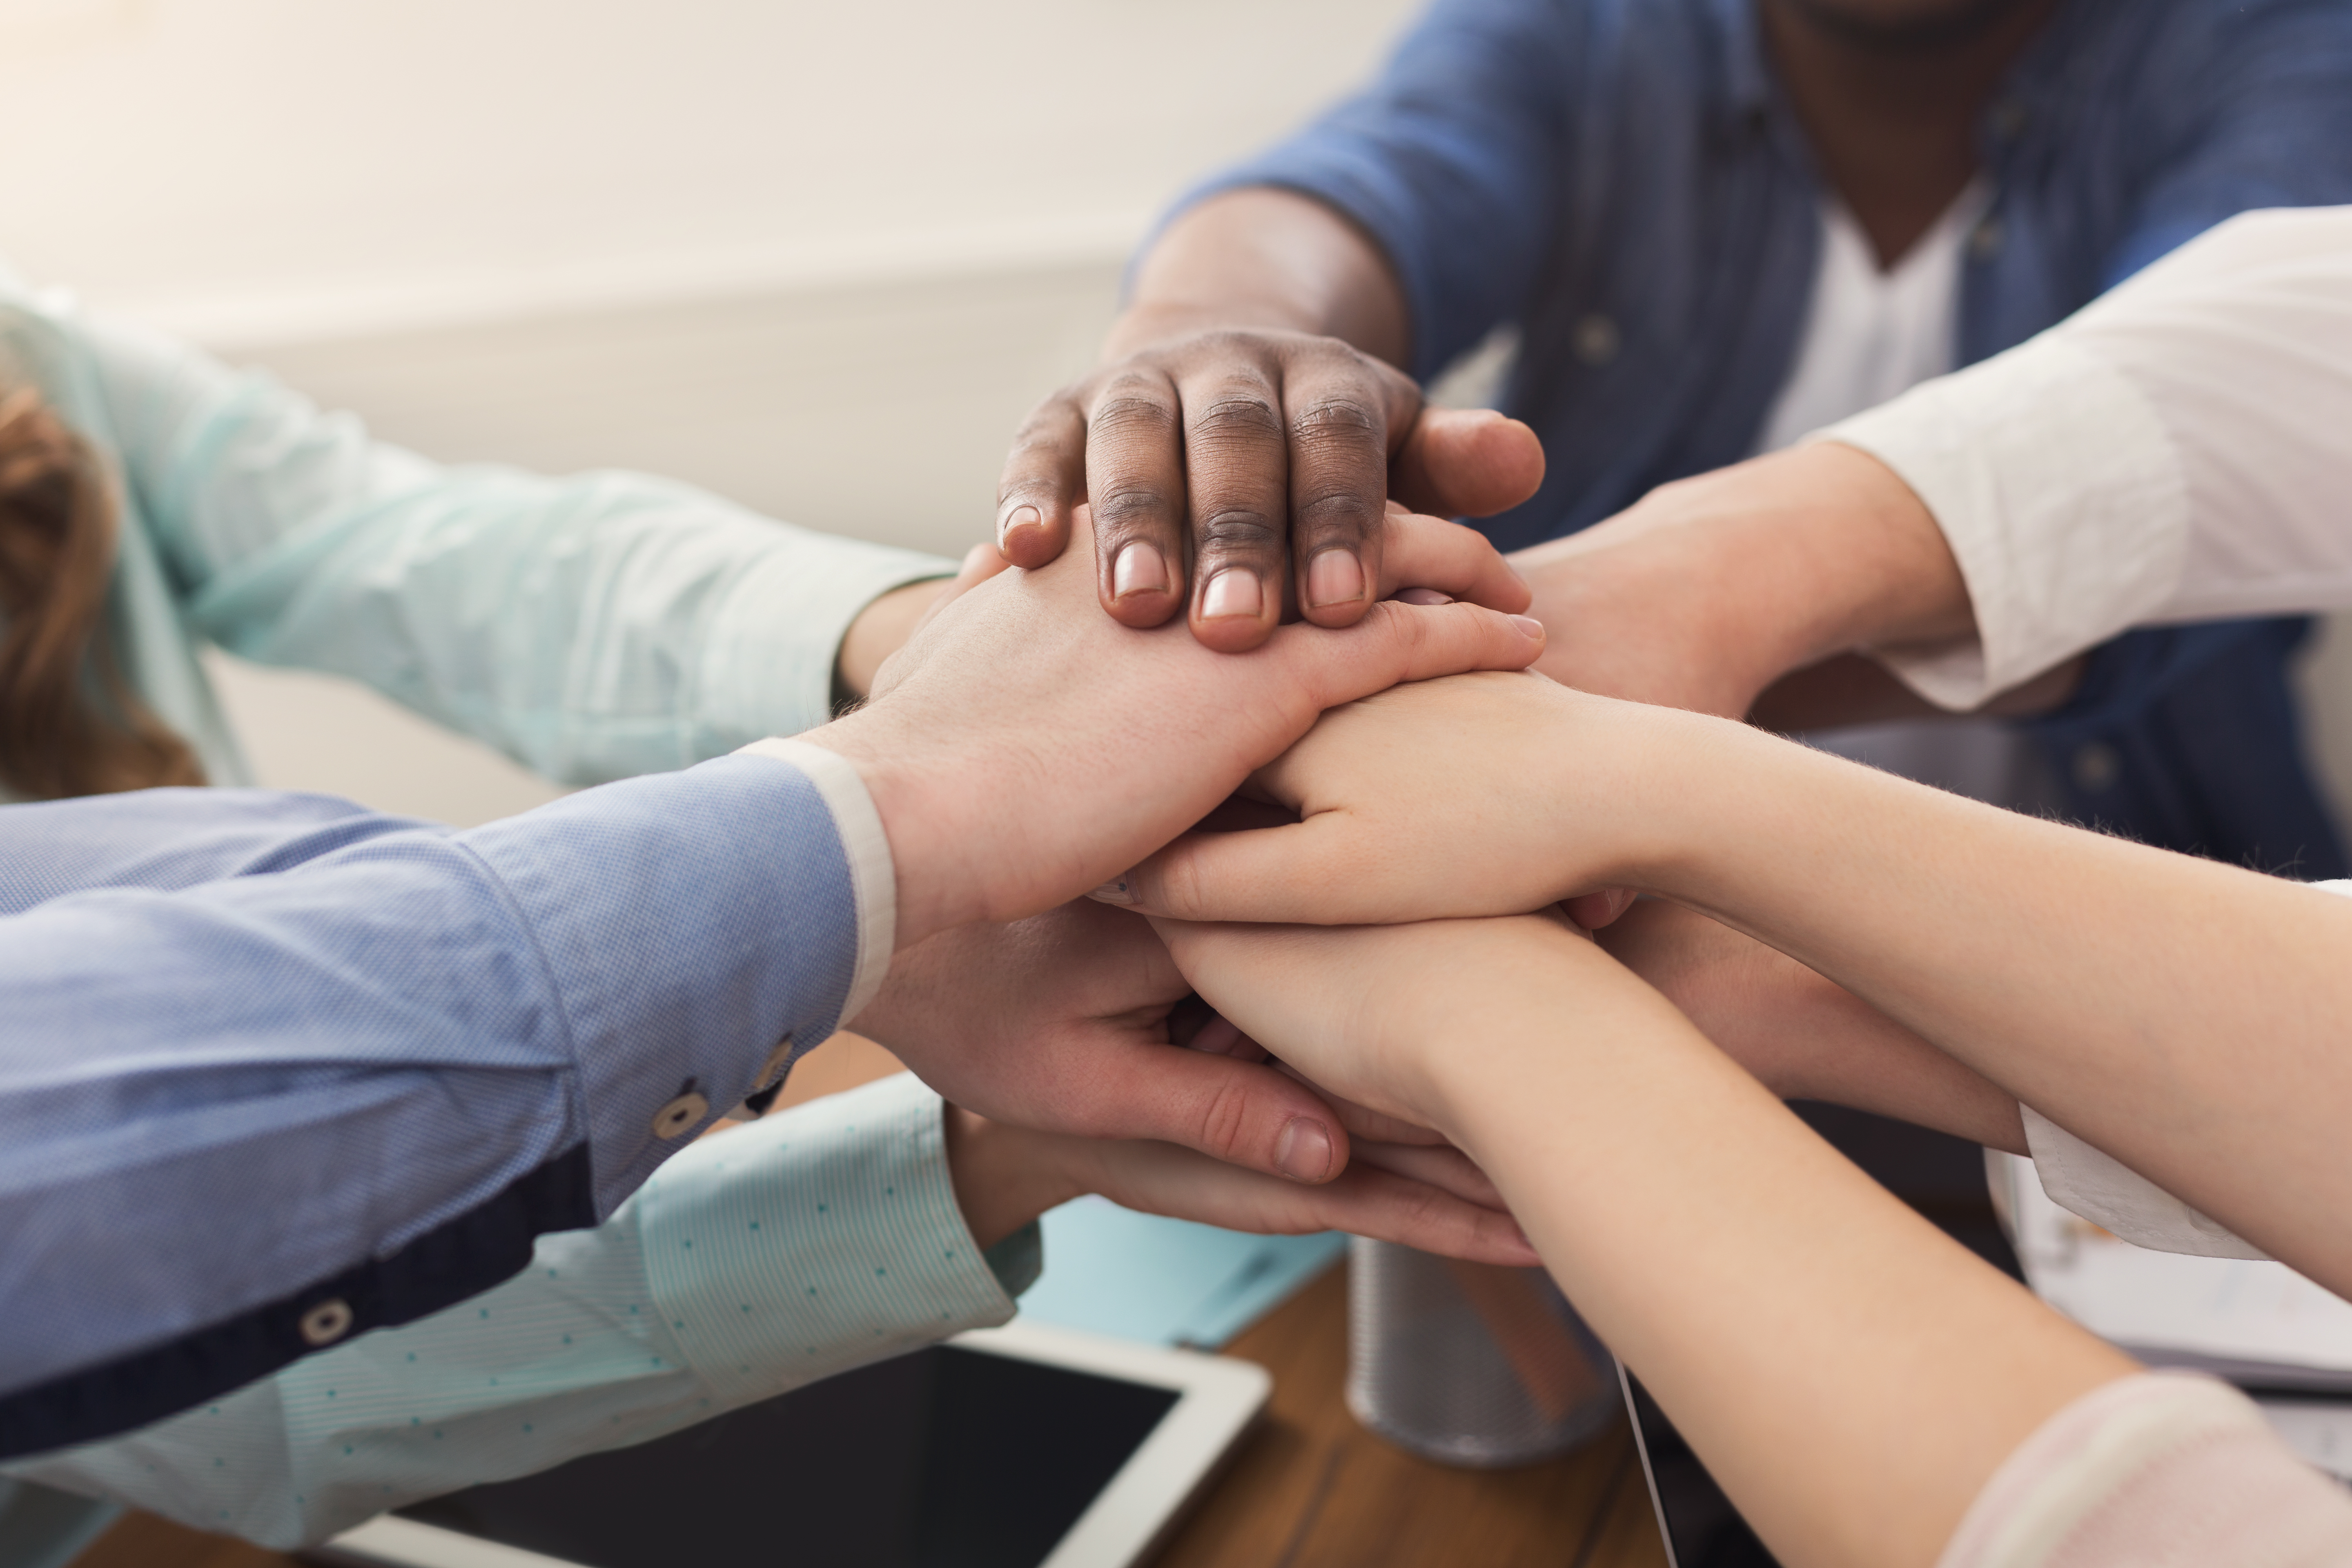 teamwork-and-teambuilding-people-connect-hands-4RUX6YS